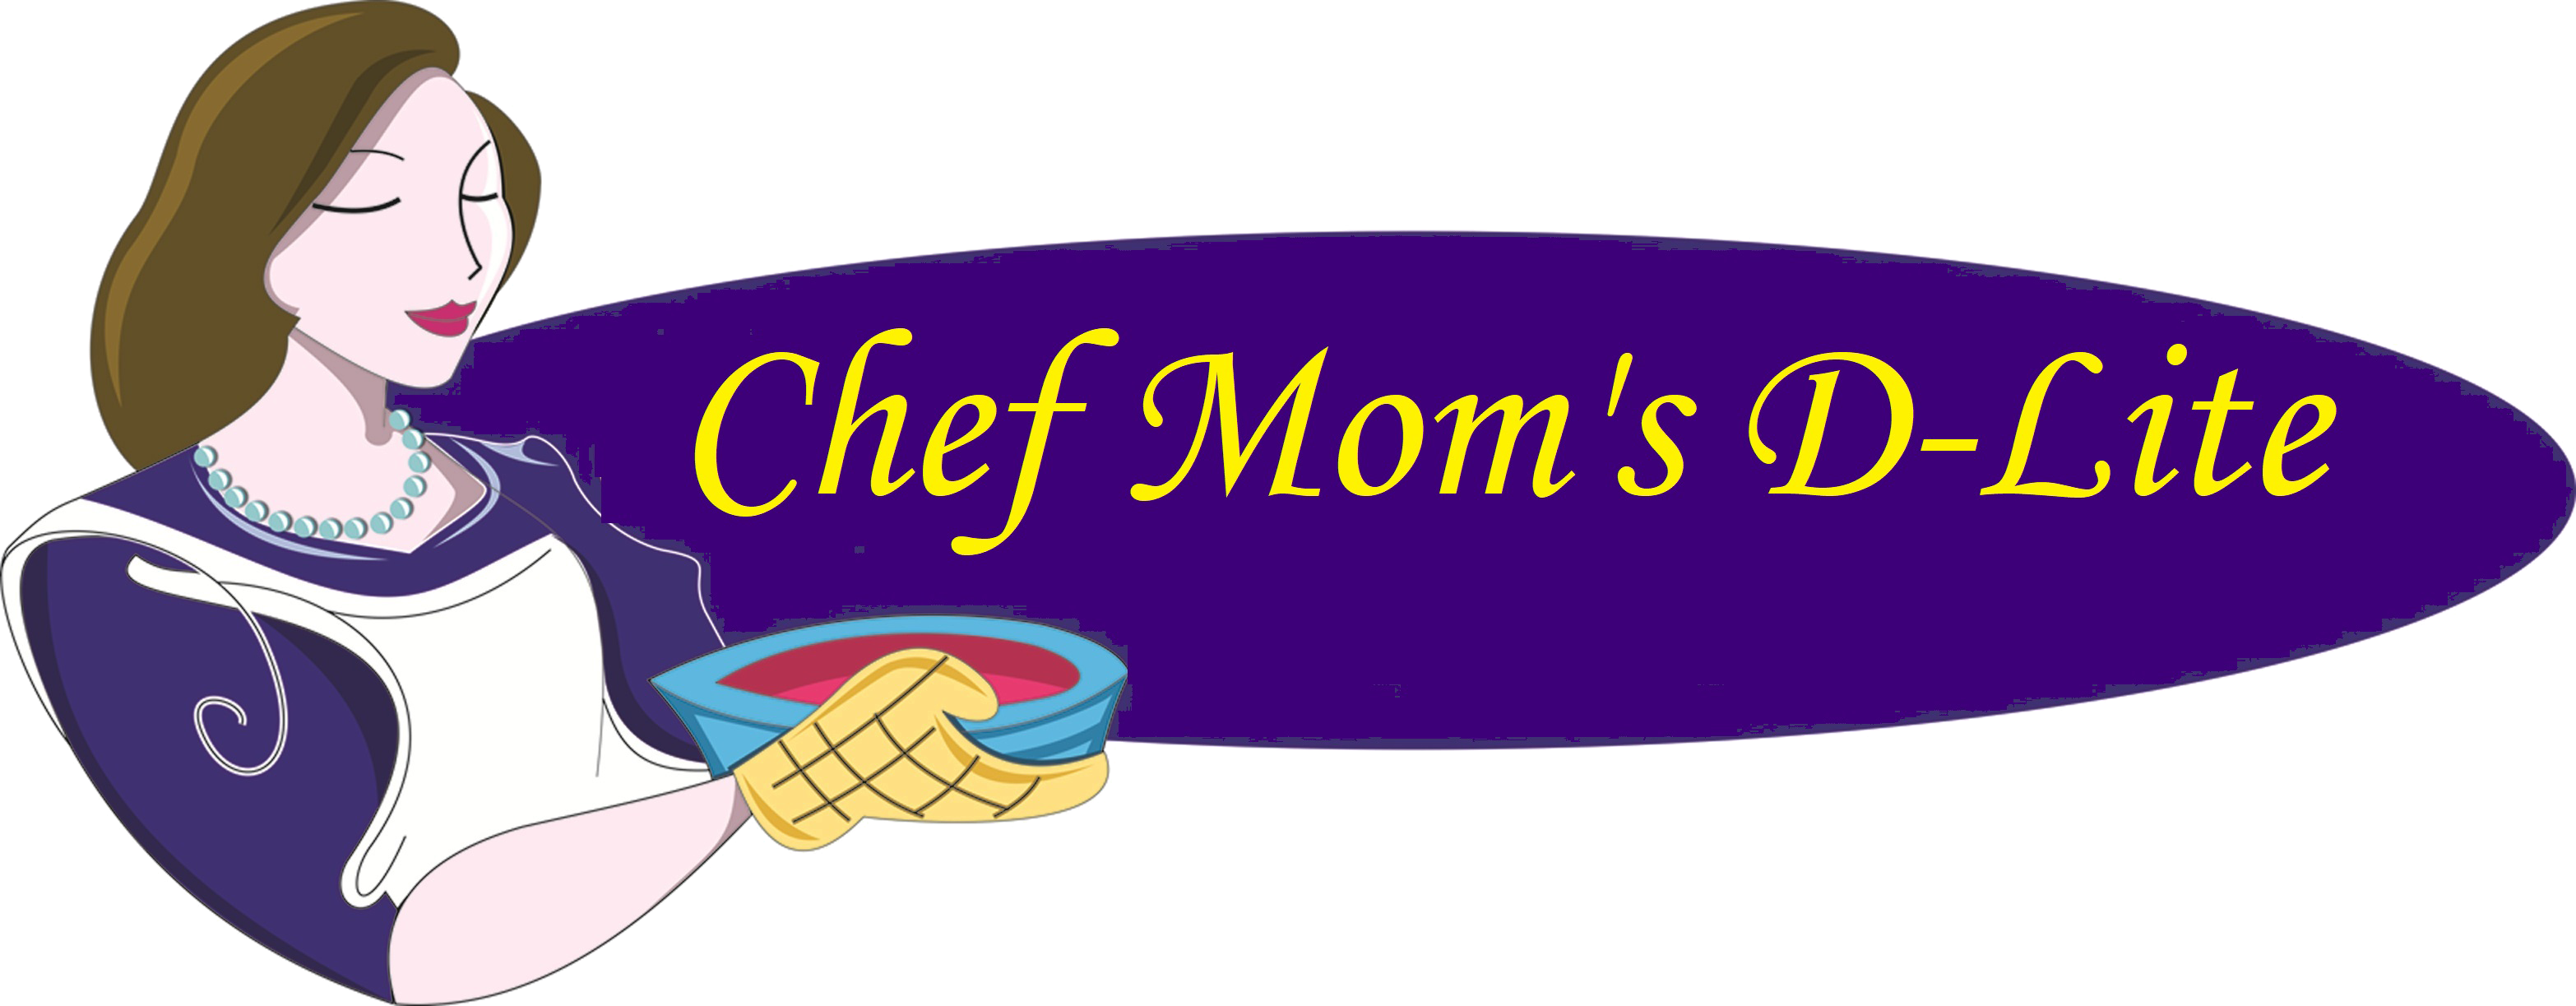 Chef Mom's D-Lite